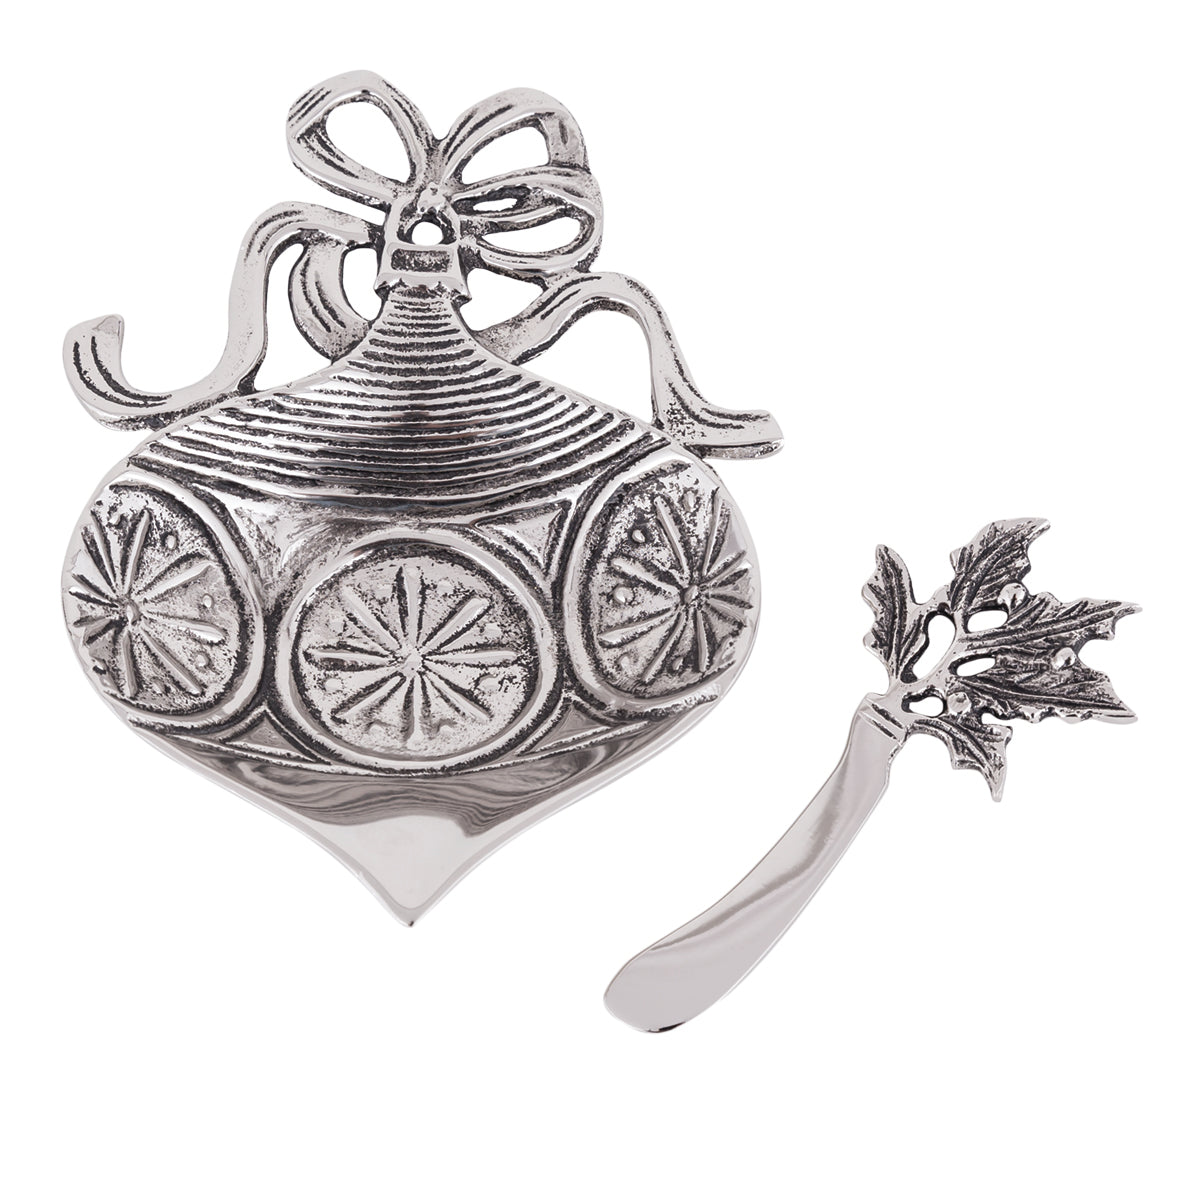 Table Accents Ornament Dip Dish w/ Spreader